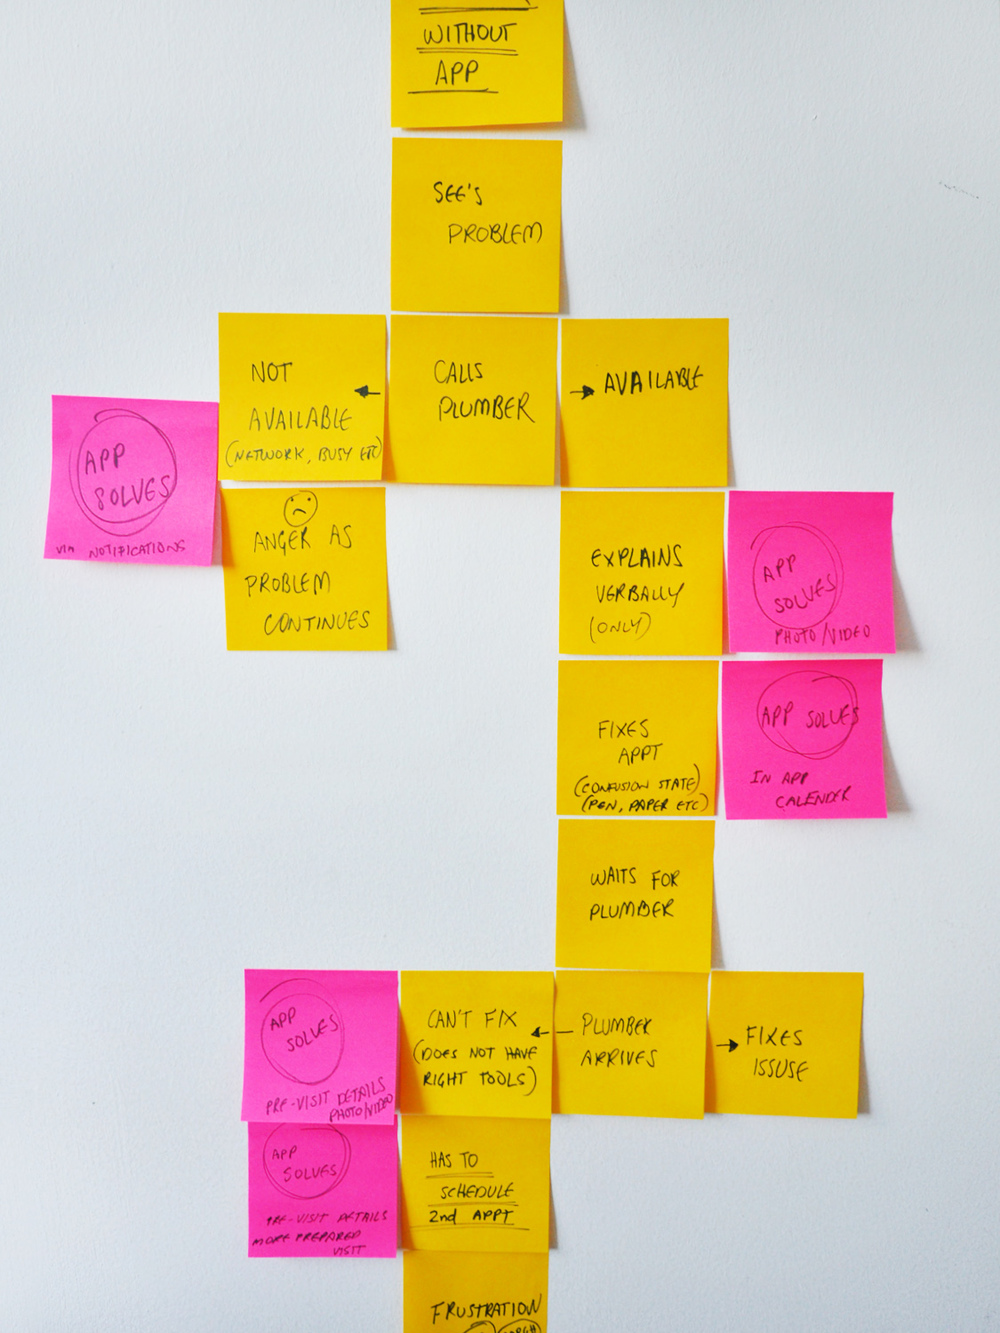 I researched customers making appointments with a plumber. The yellow post-it notes describe the customers steps during the appointment making process. The pink notes signify potential problem areas (noting an appointment, technical explanation etc.) where an app like Pocket Plumber could help make things easier.